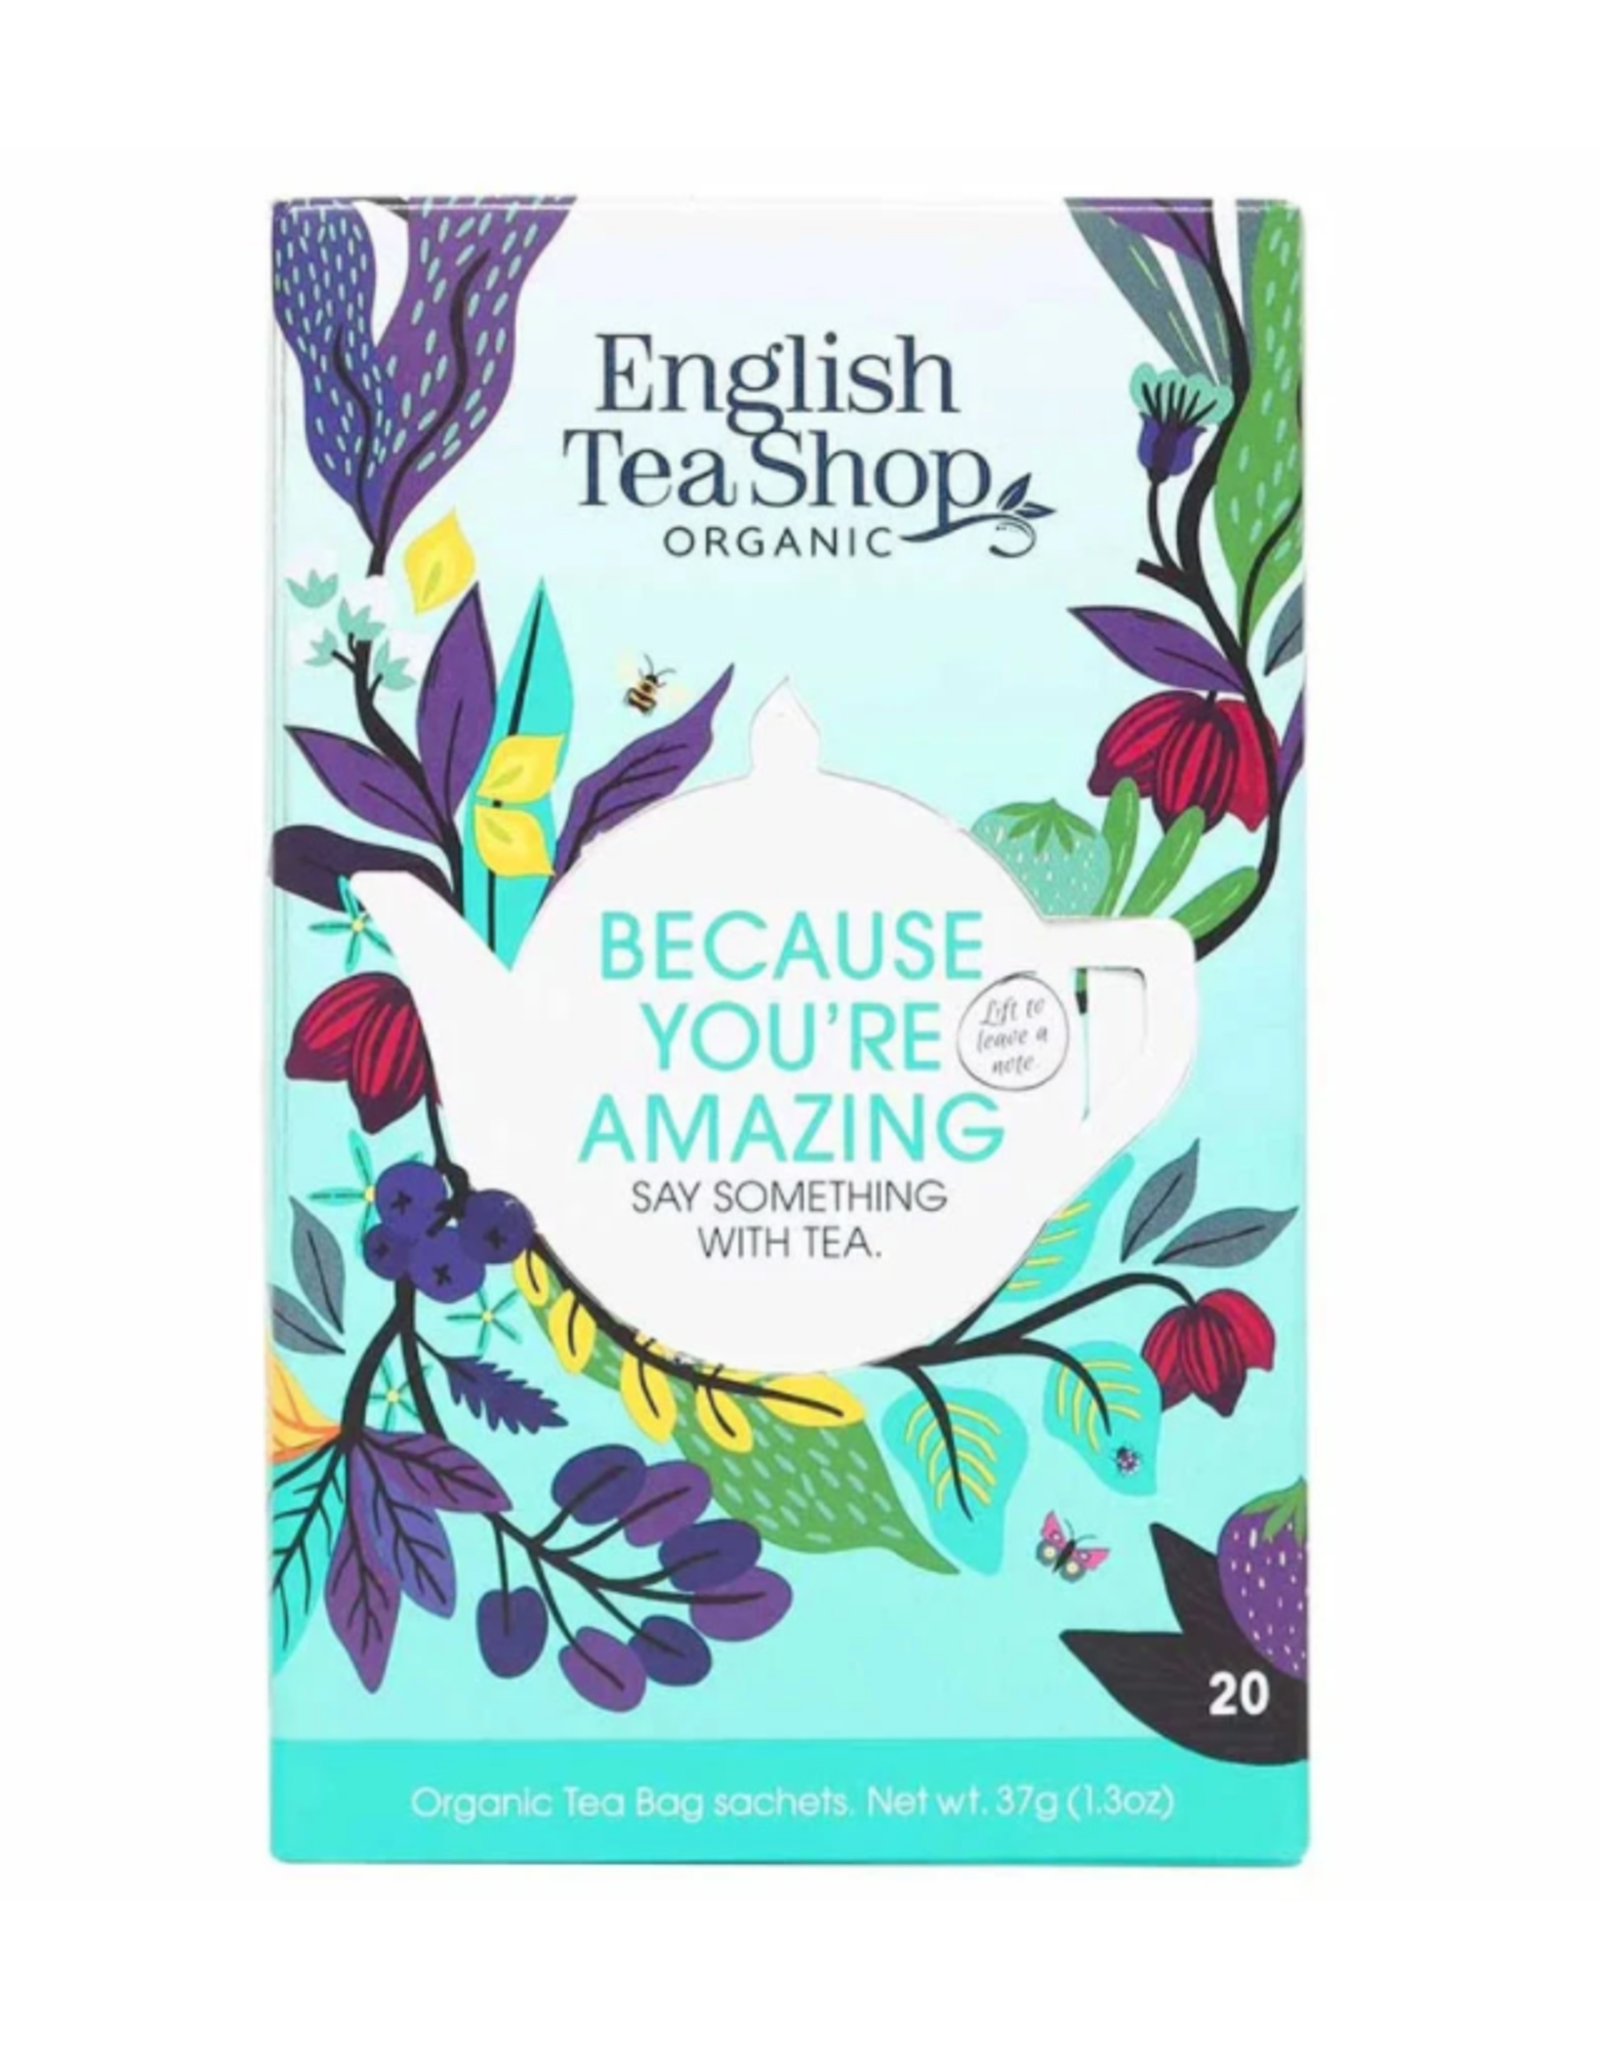 English Tea Shop Say Something With Tea - Because You're Amazing - 20 tea bags